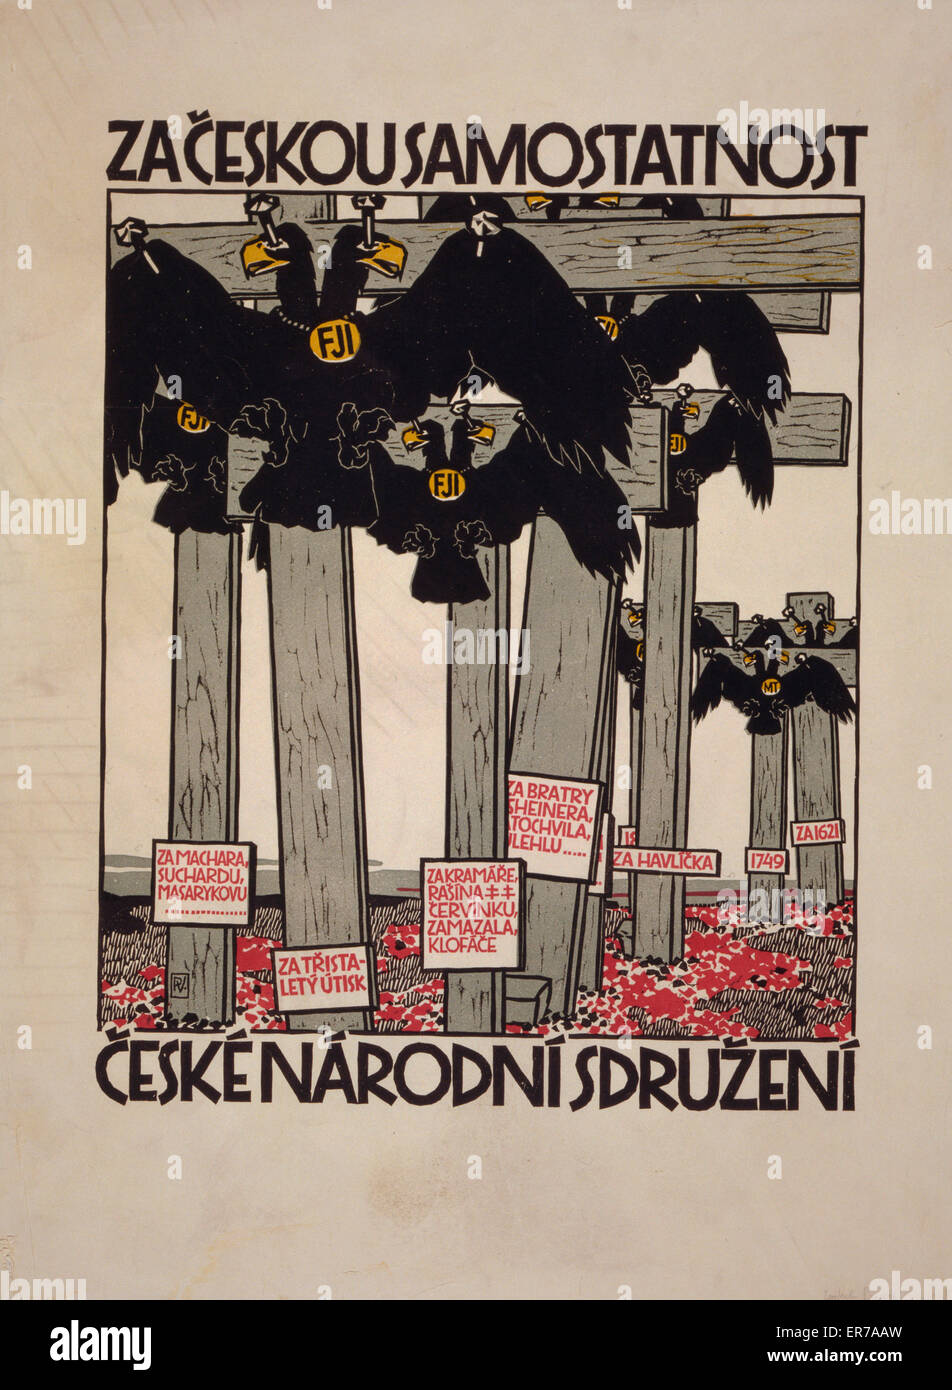 Za ceskou samostatnost, Ceske narodni sdruzeni. Poster showing doubled-headed imperial eagles nailed to crosses. - Stock Image